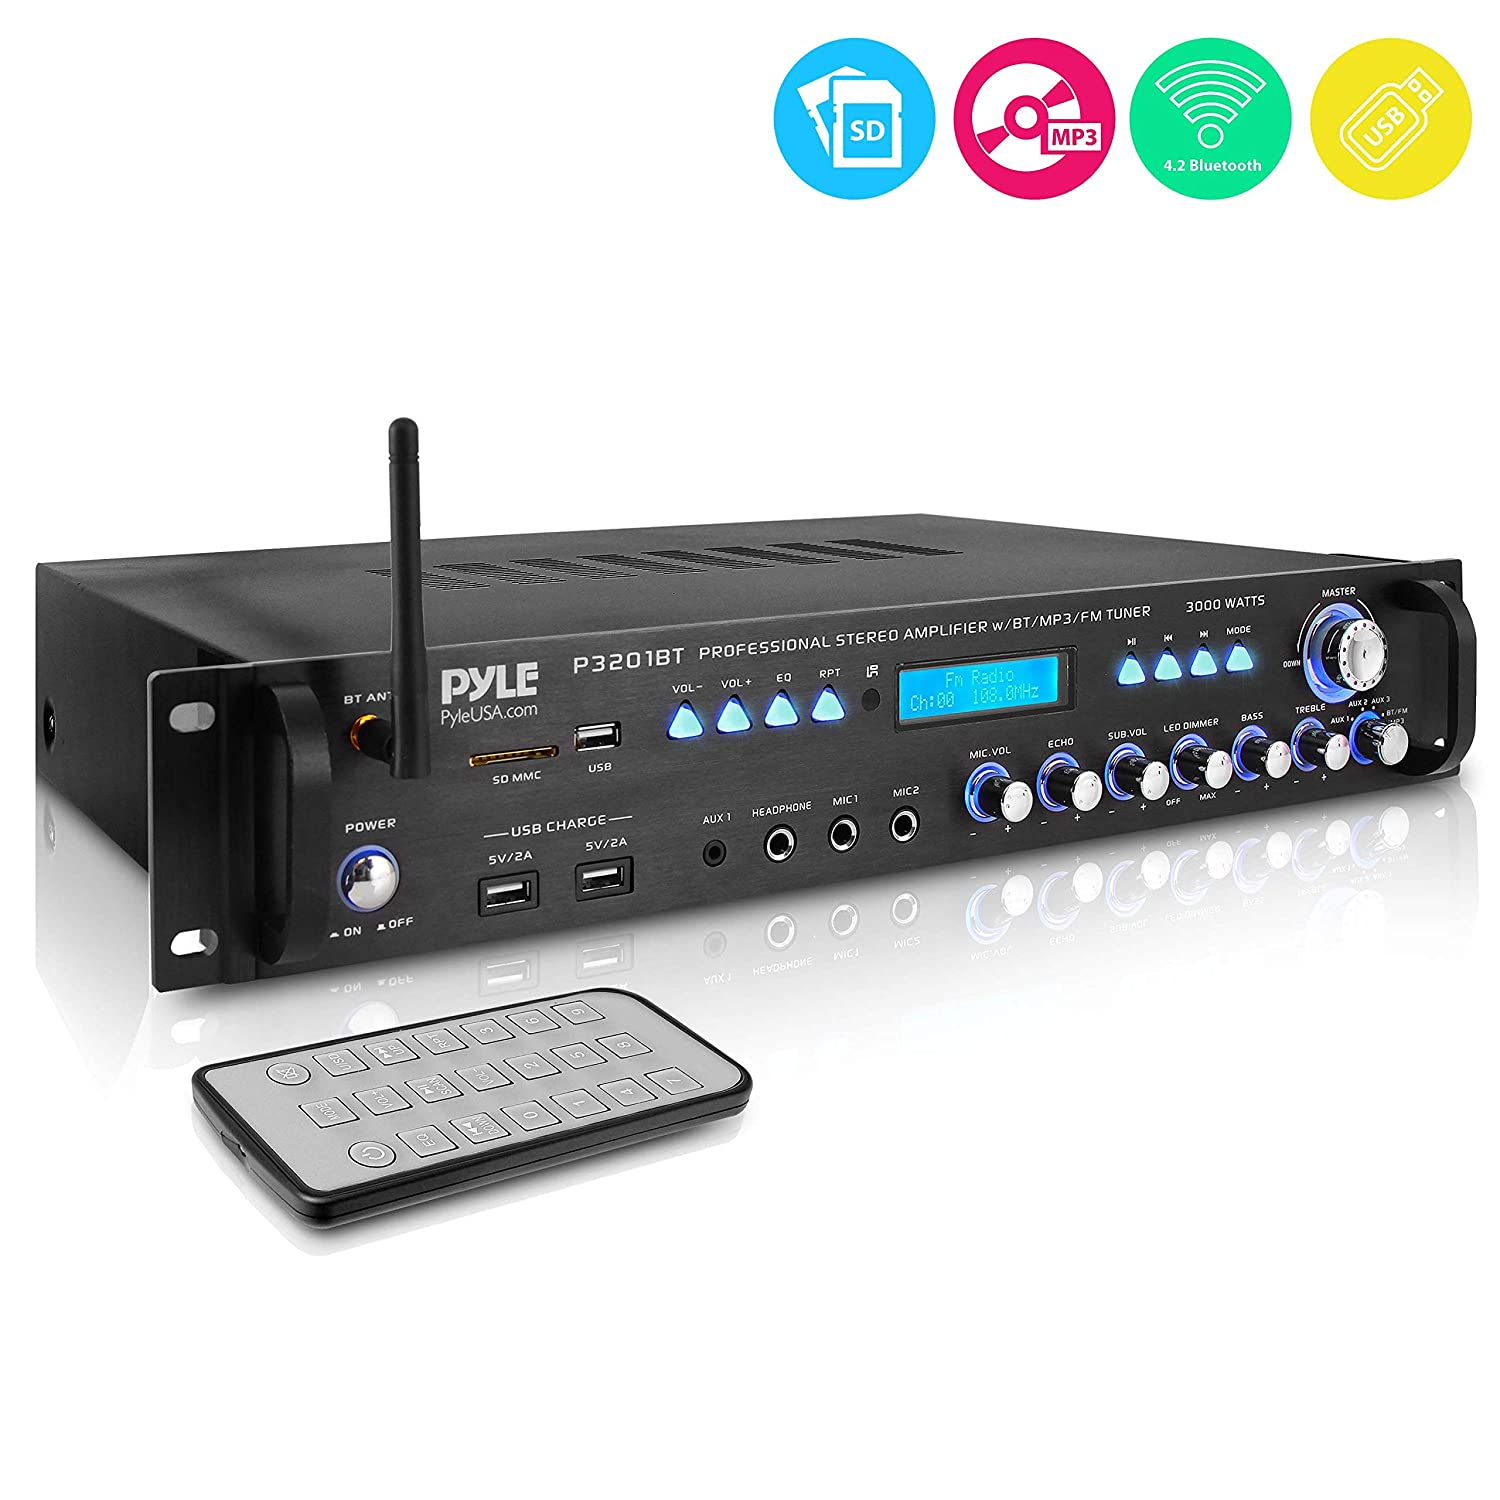 Multi Channel Bluetooth Preamplifier Receiver - 3000 Watt Audio Home Speaker Sound Stereo Receiver w/ Radio, USB, Headphone, AUX, RCA, Dual Microphone w/ Echo, LED, Wireless Streaming - Pyle P3201BT